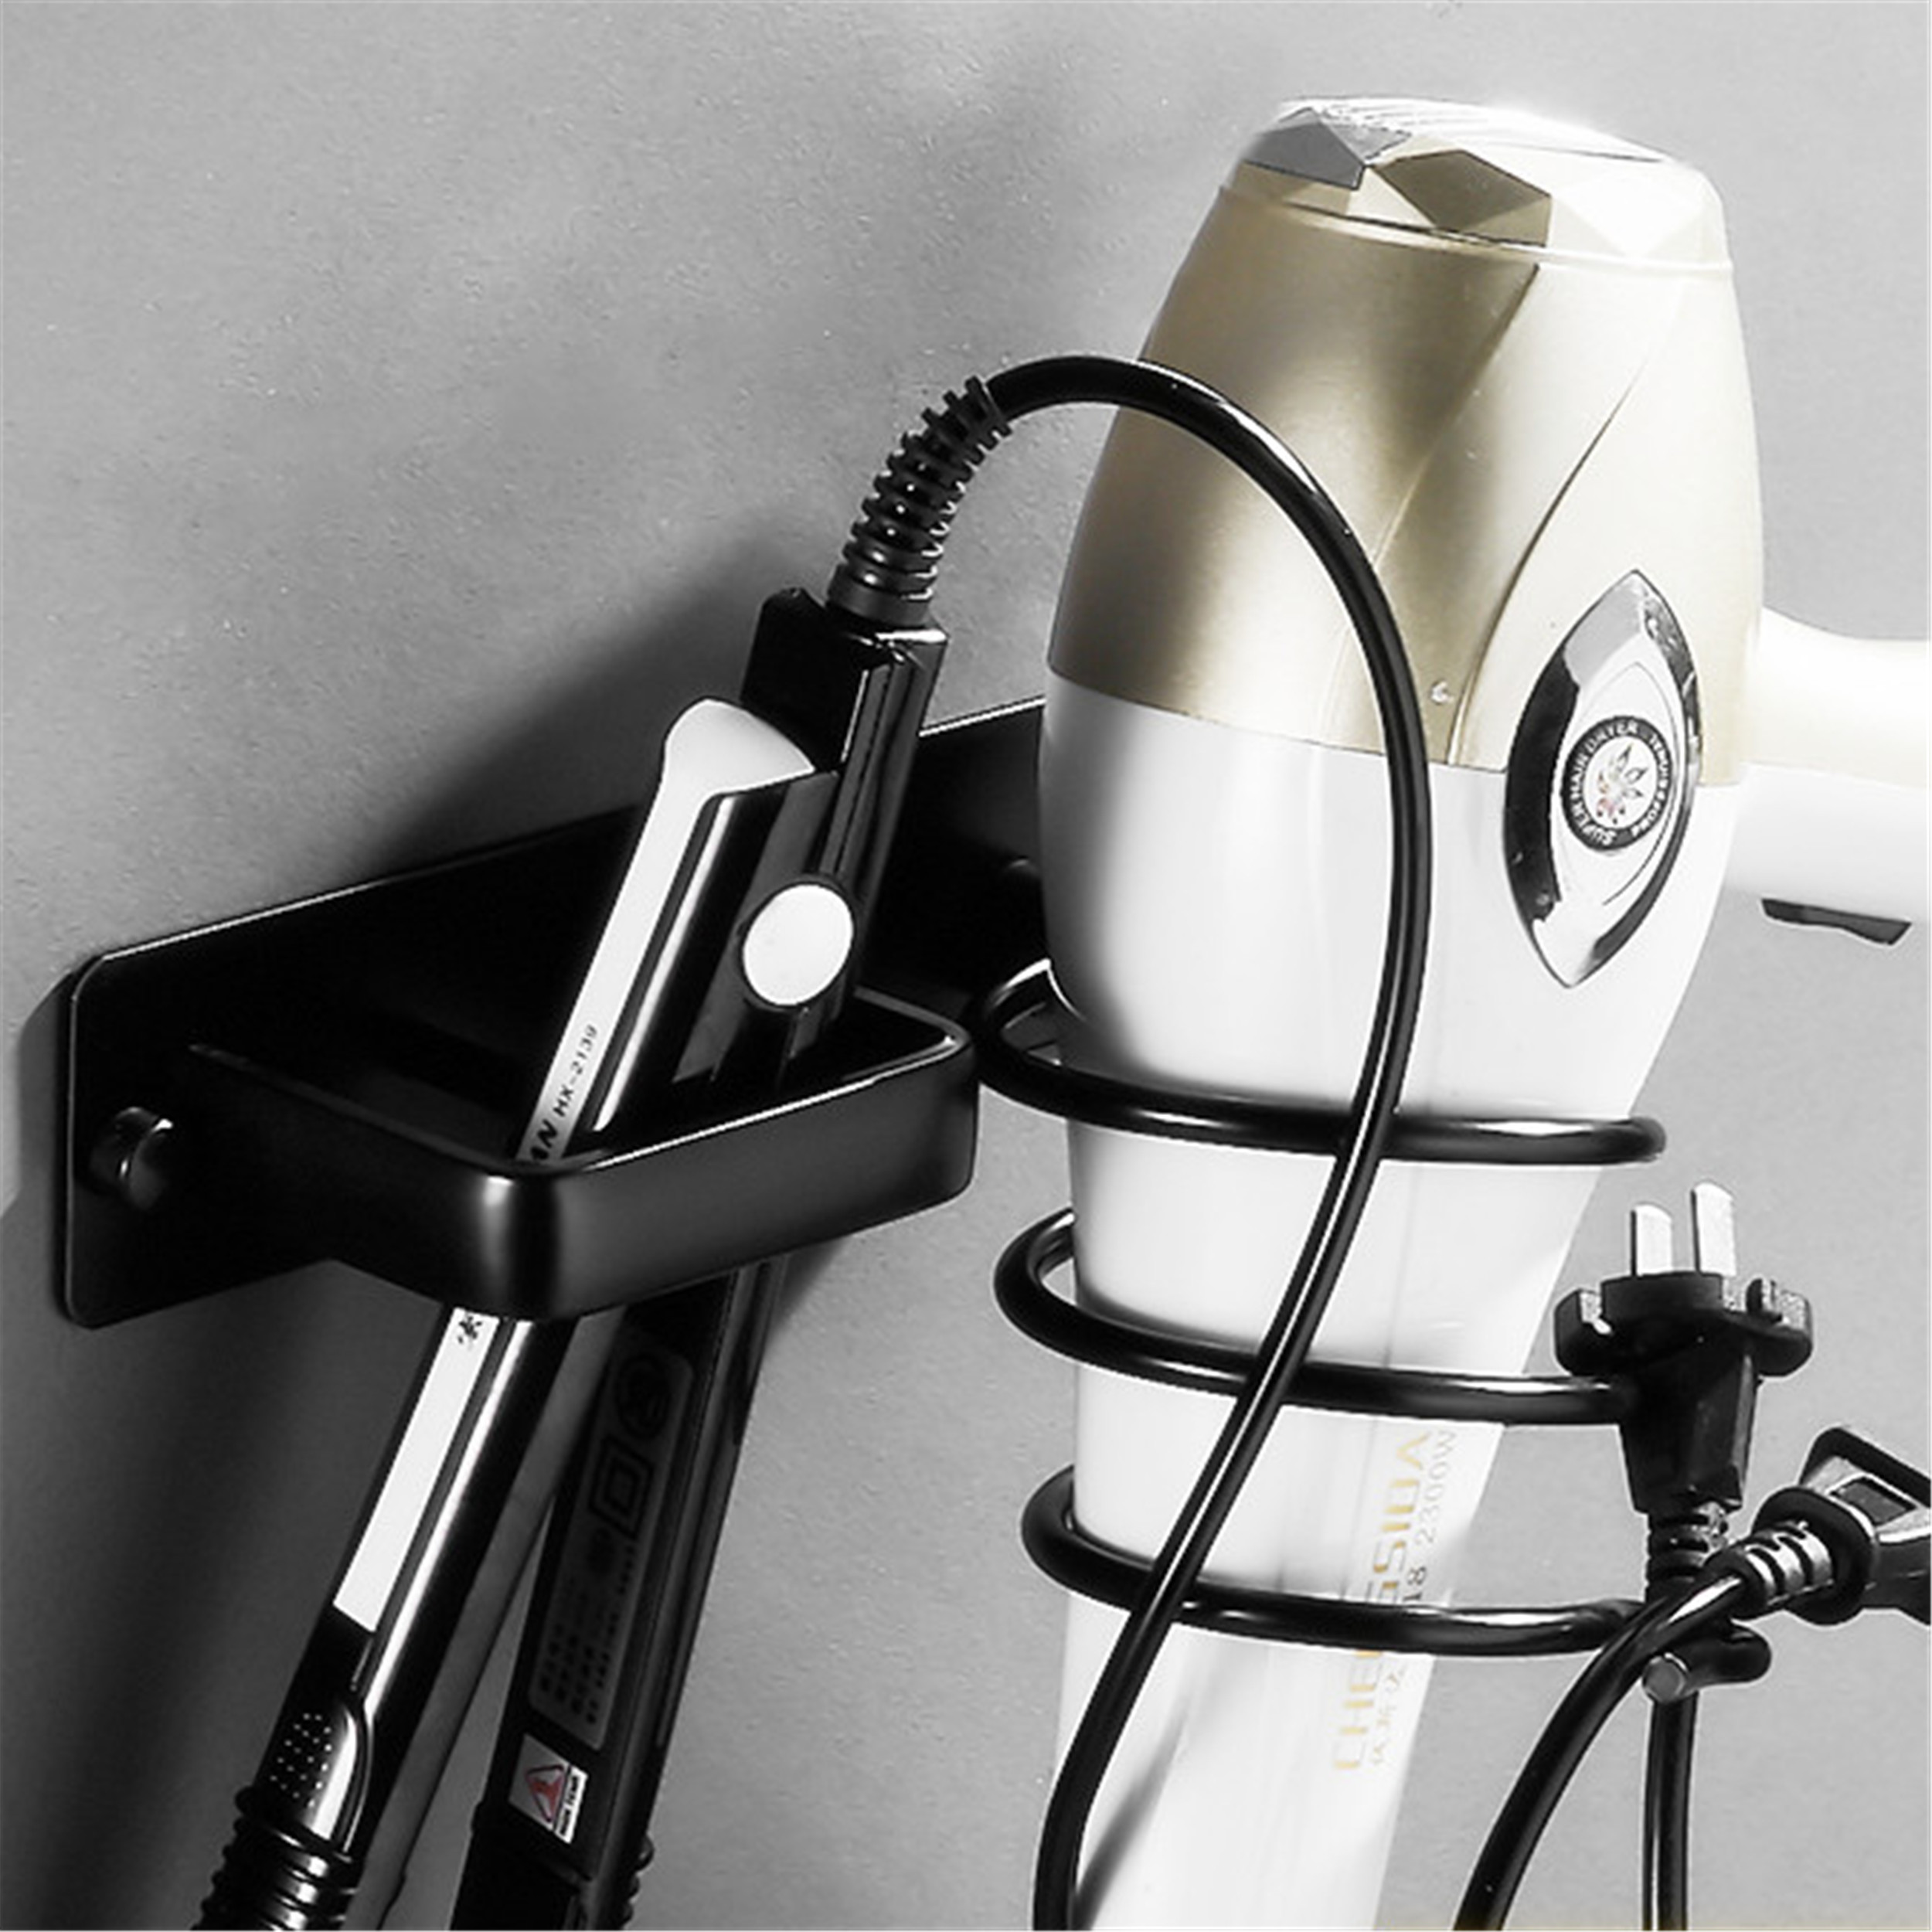 Aluminum Hair Straightener Holder Bathroom Bedroom